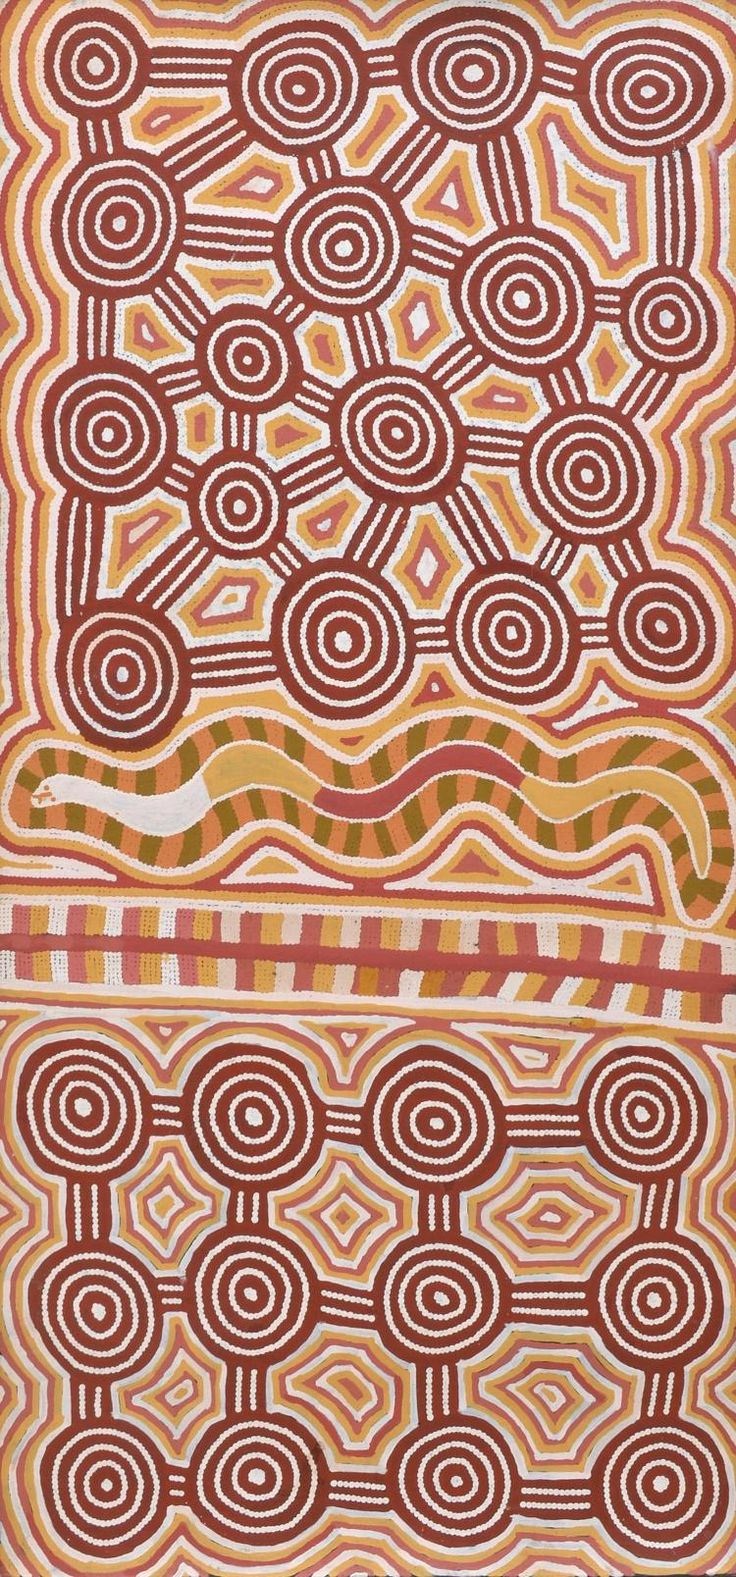 <b>RAY JAMES TJANGALA</b> <b>(BORN 1958)</b> <br  /> Tingari, 1994 <br  /> acrylic on linen <br  /> inscribed verso with artist''s name and Papunya Tula cat. no. RJ940816  <br  /> 153 x 72cm <br  />  <br  /> PROVENANCE: <br  /> Coo-ee Aboriginal Art Gallery, Sydney